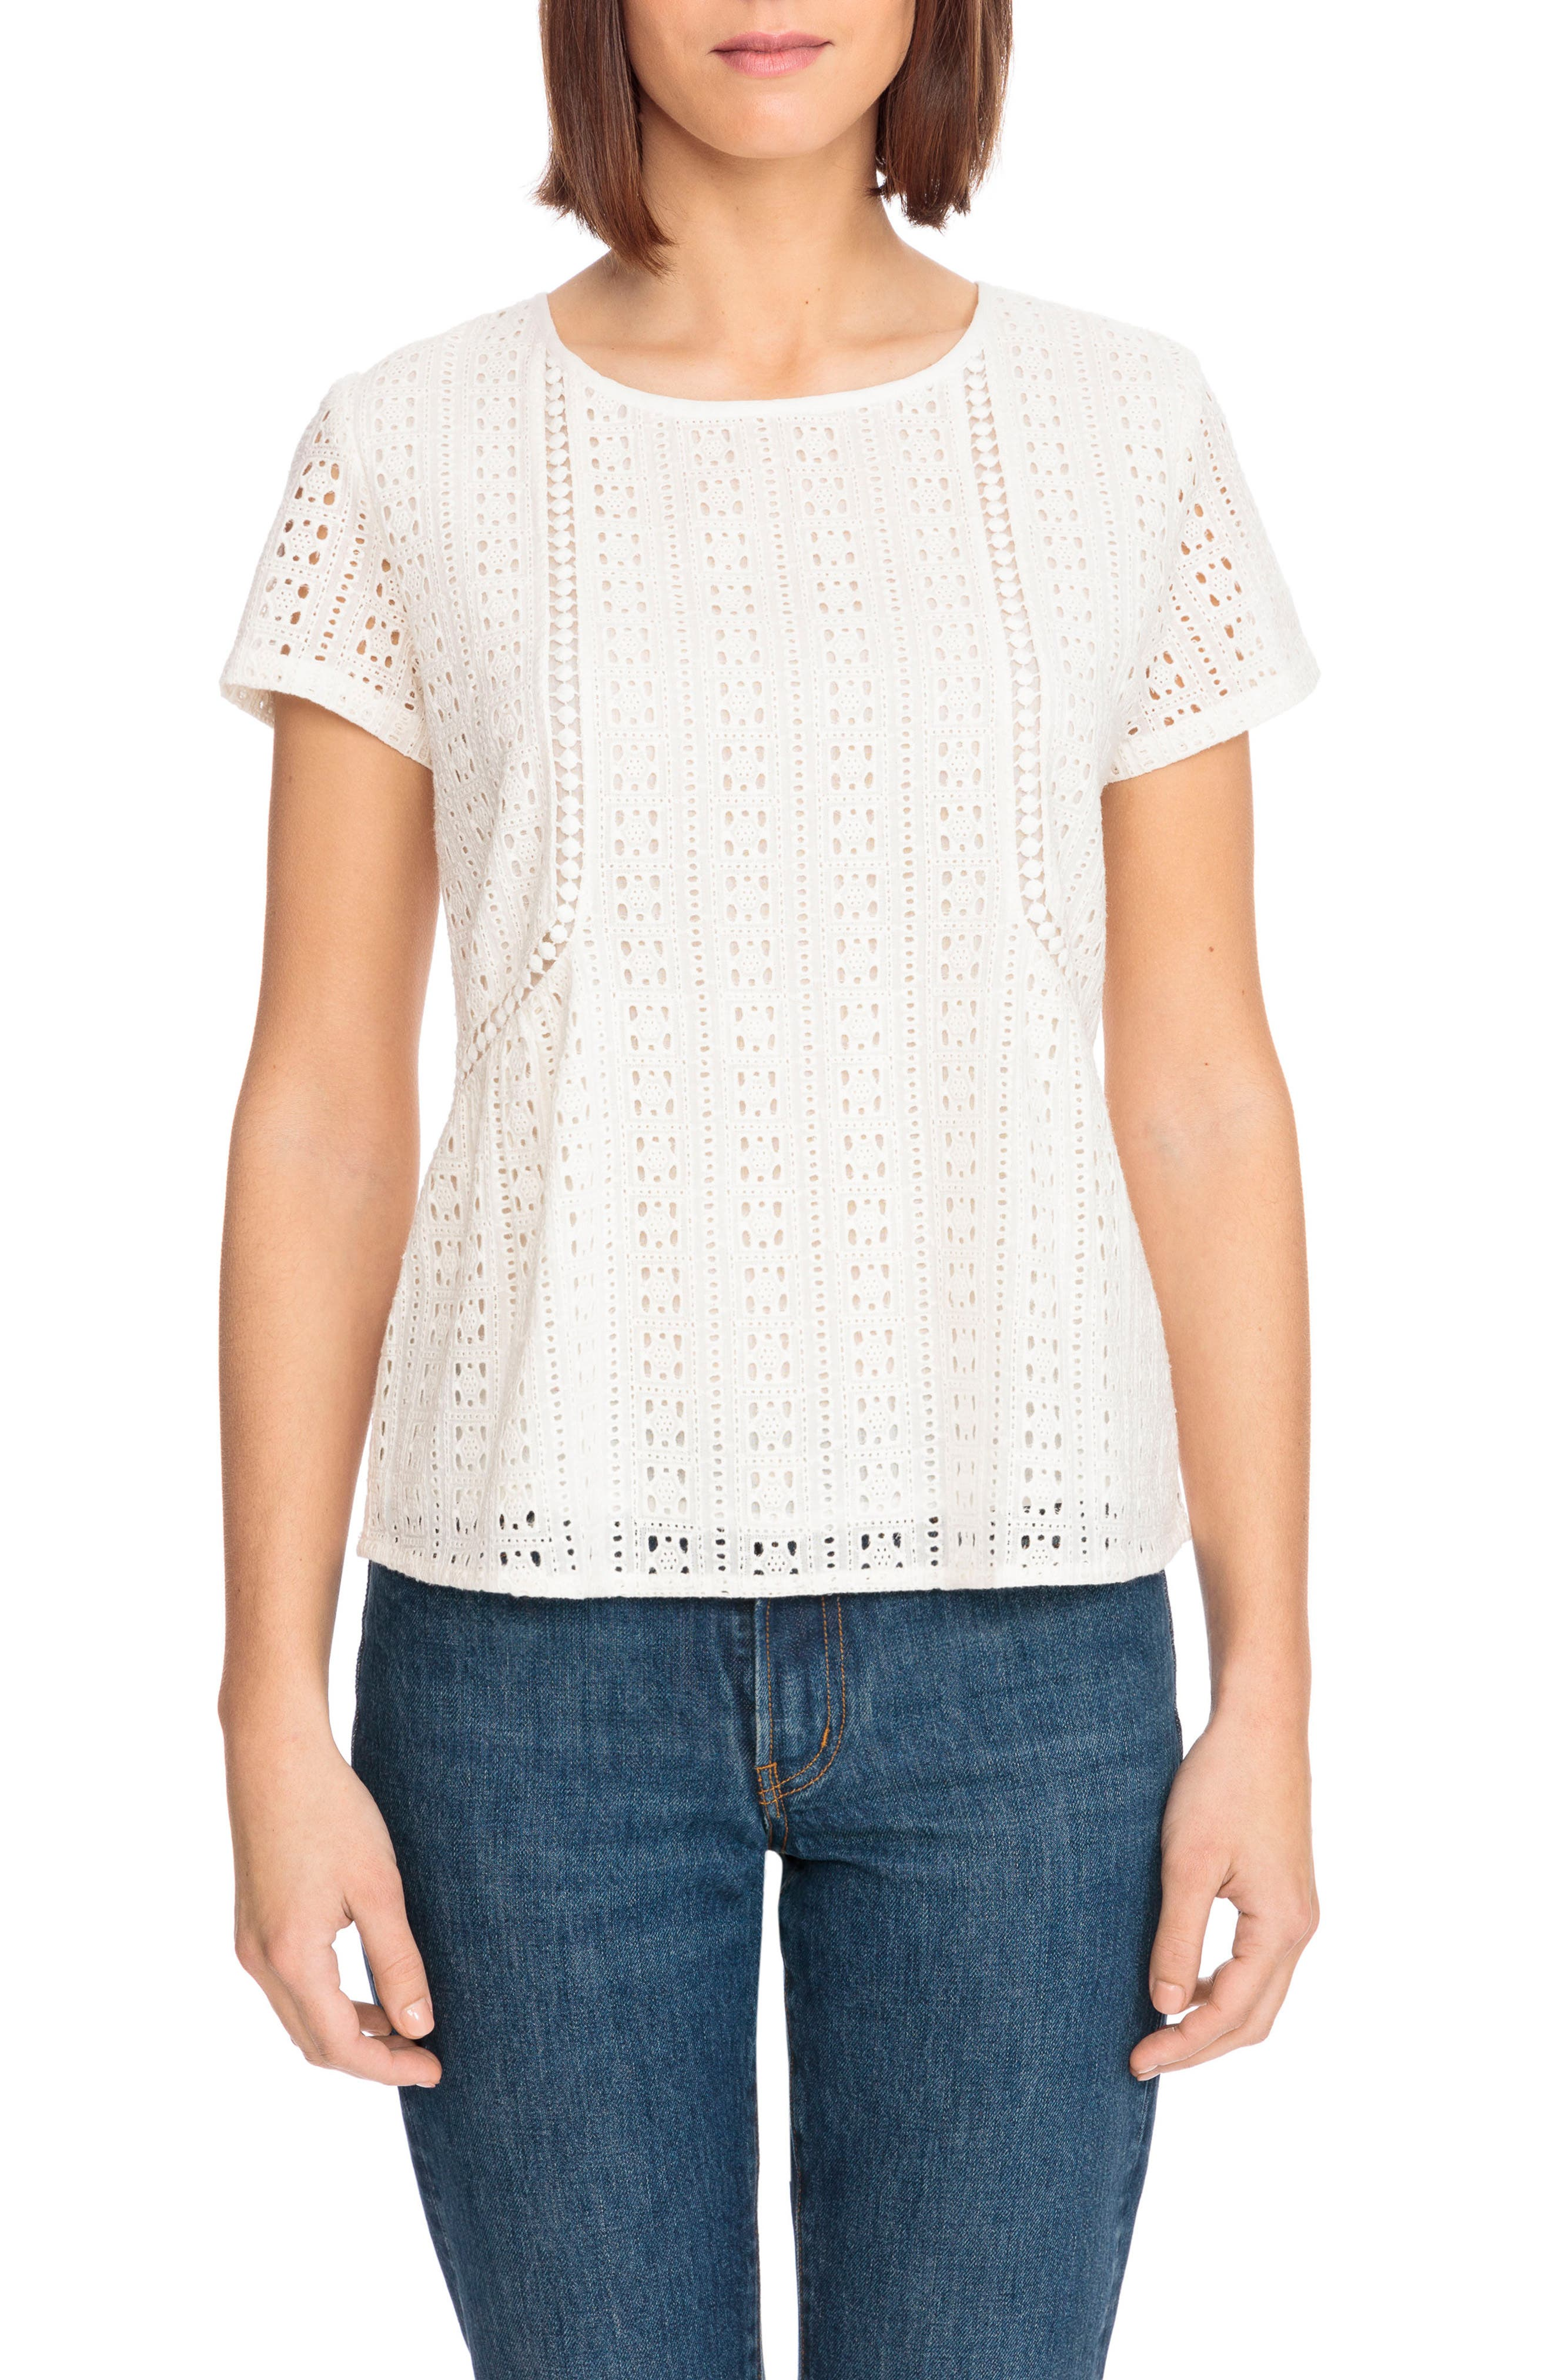 Clo Crochet Blouse,                         Main,                         color, Off White